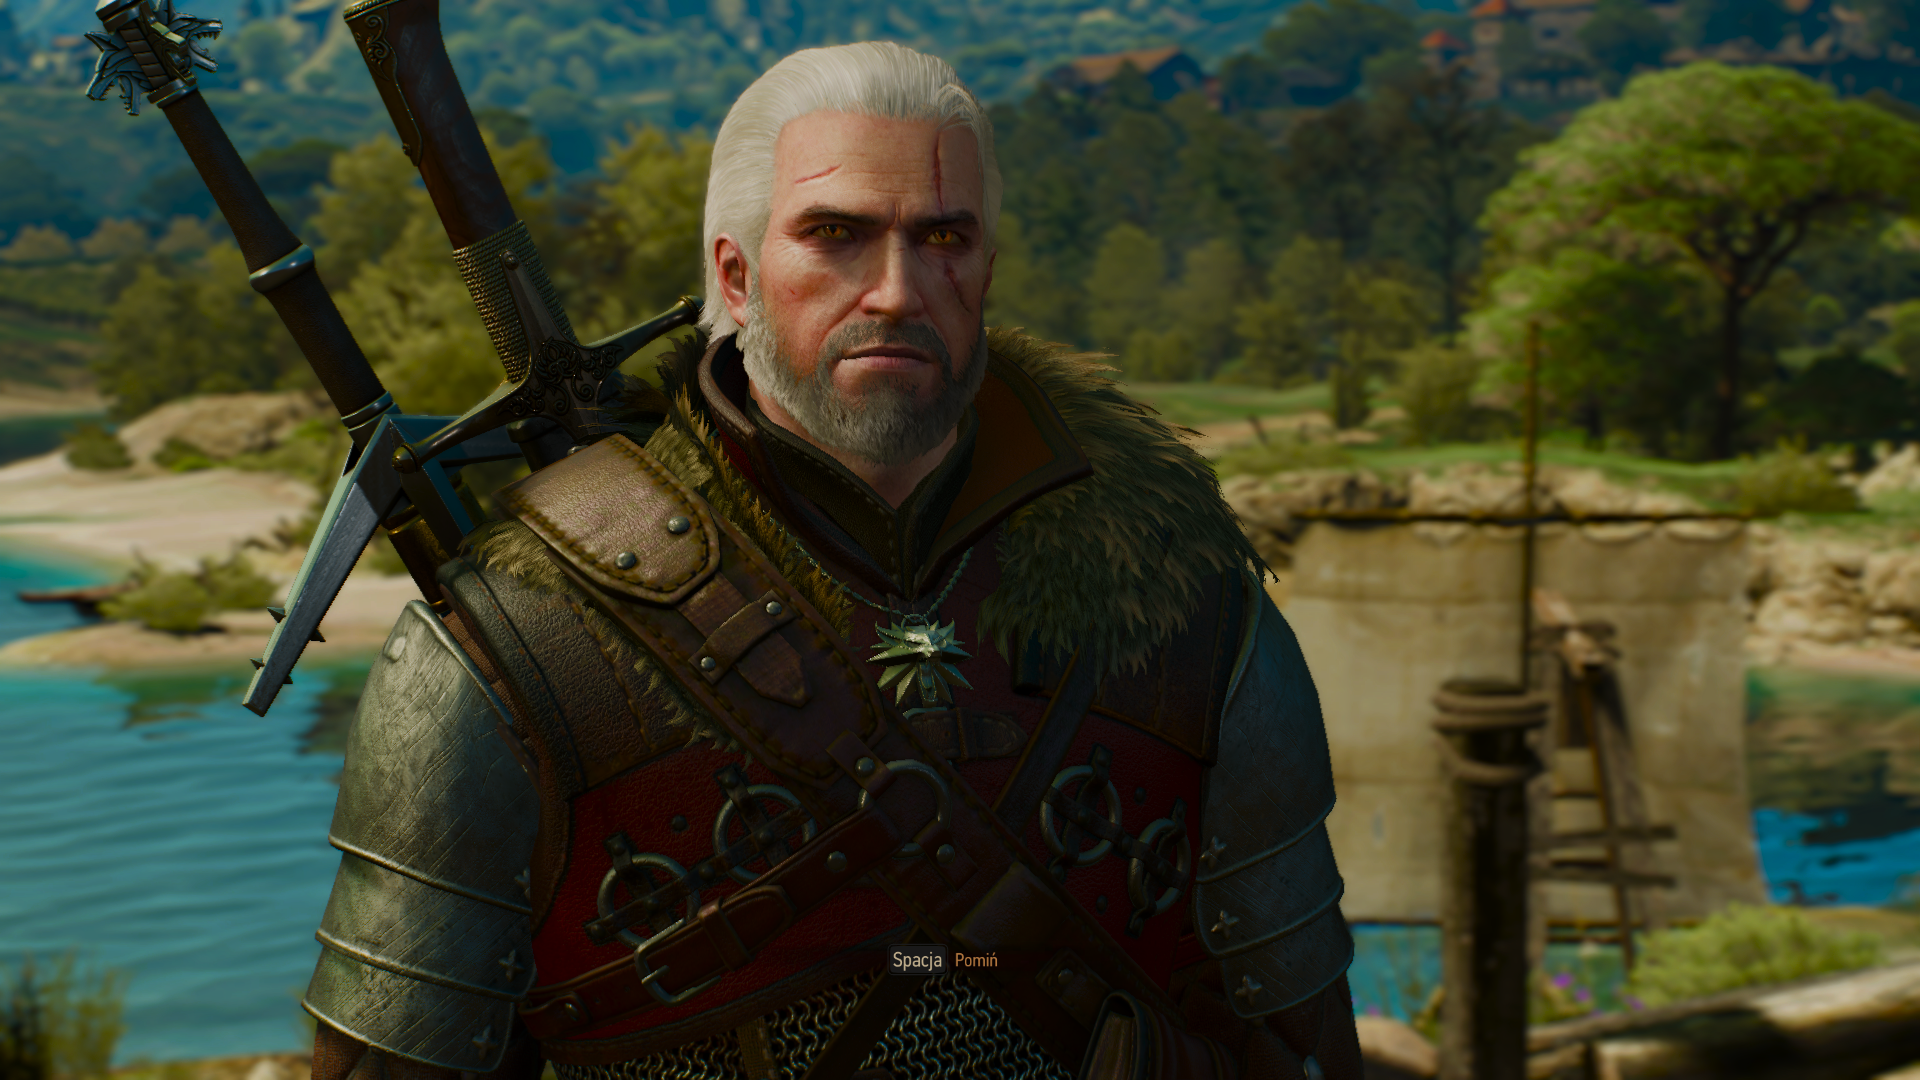 The Witcher 3 02.01.2019 23_06_55.png - Witcher 3: Wild Hunt, the